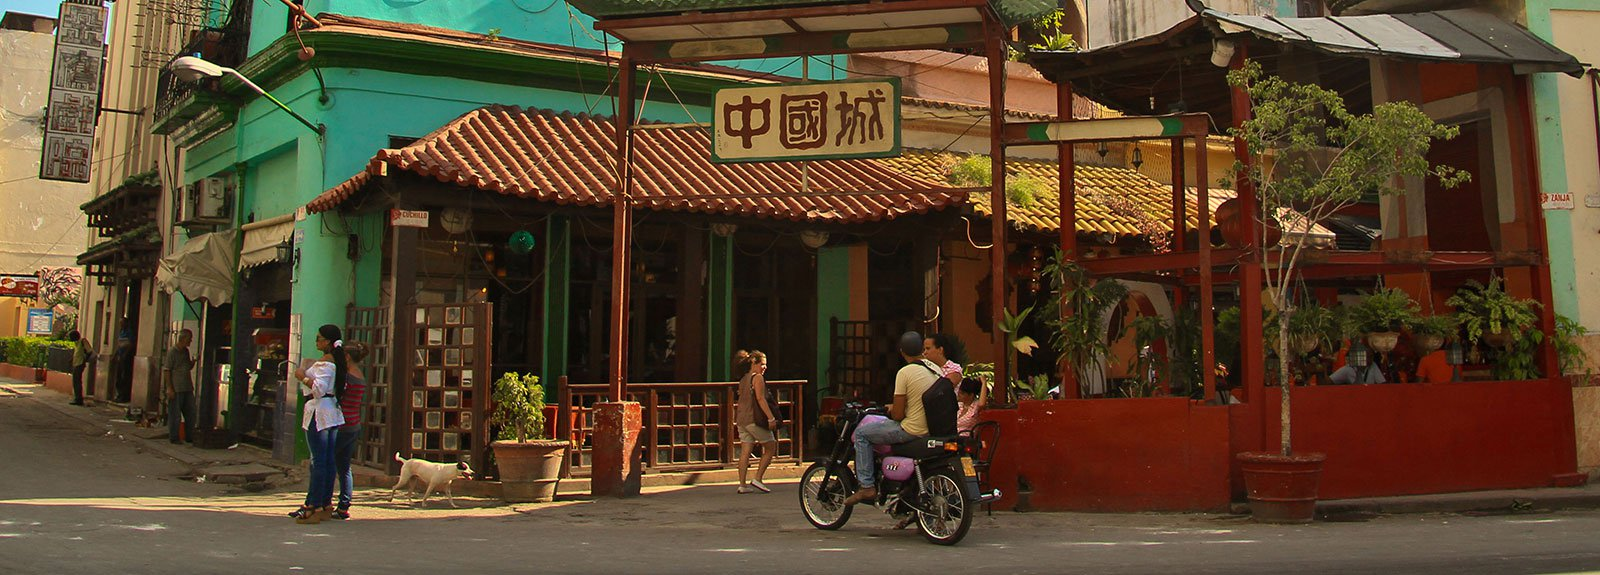 Entrance to the China town, chinese arquitecture and a green building